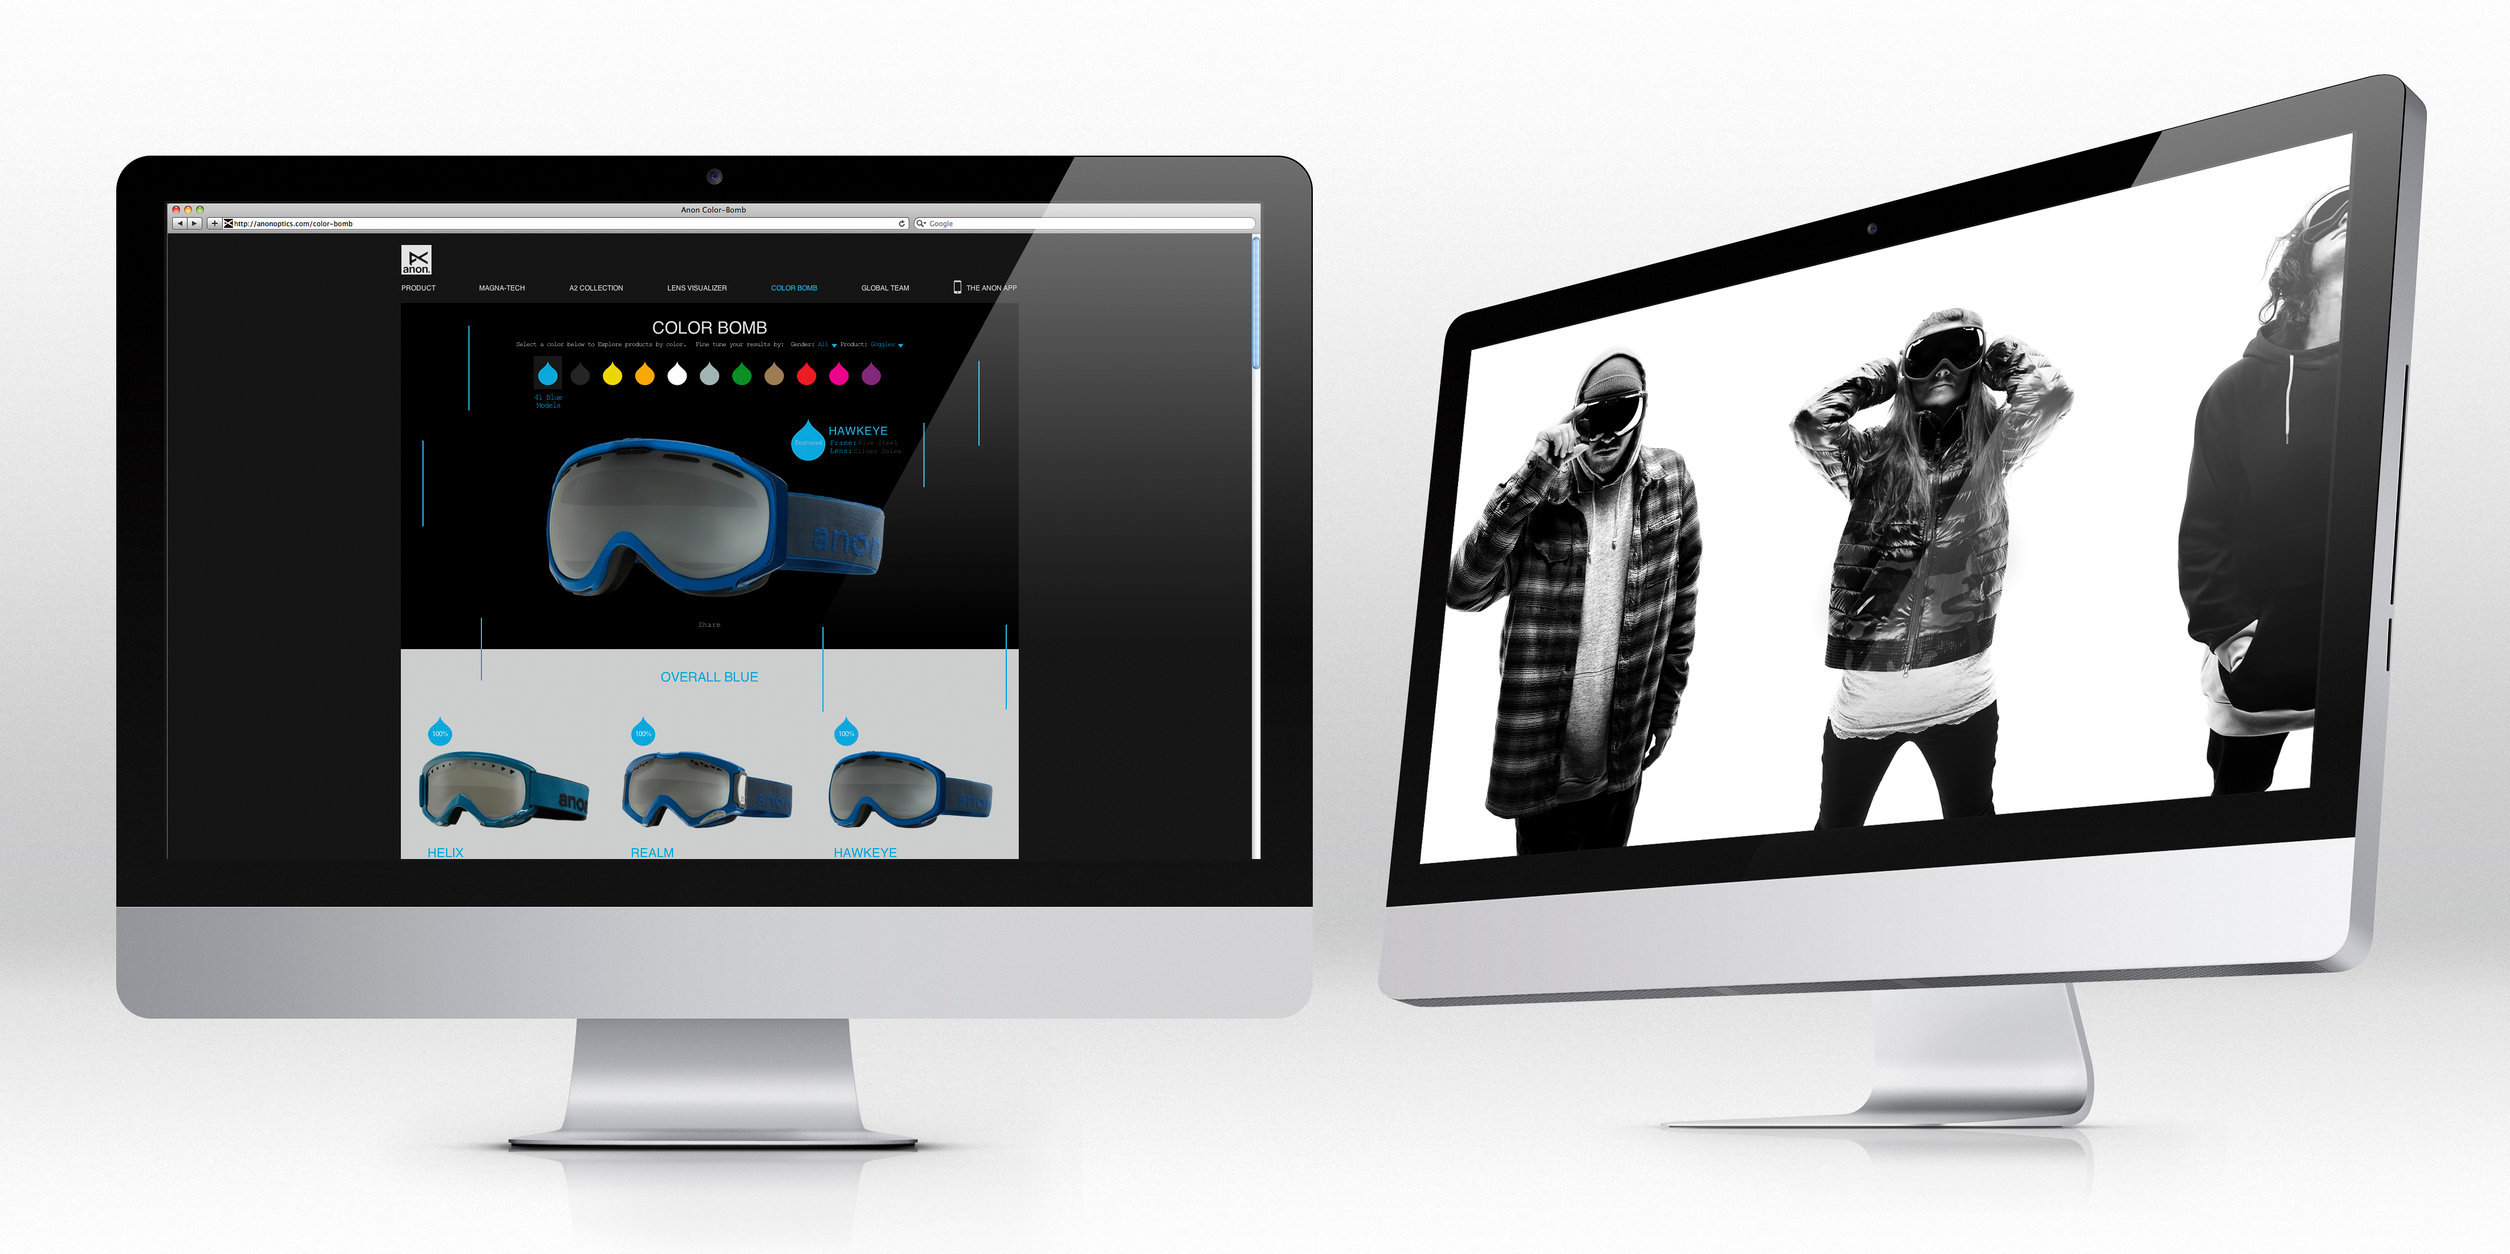 Product and advertising photography for anon optics website and marketing materials